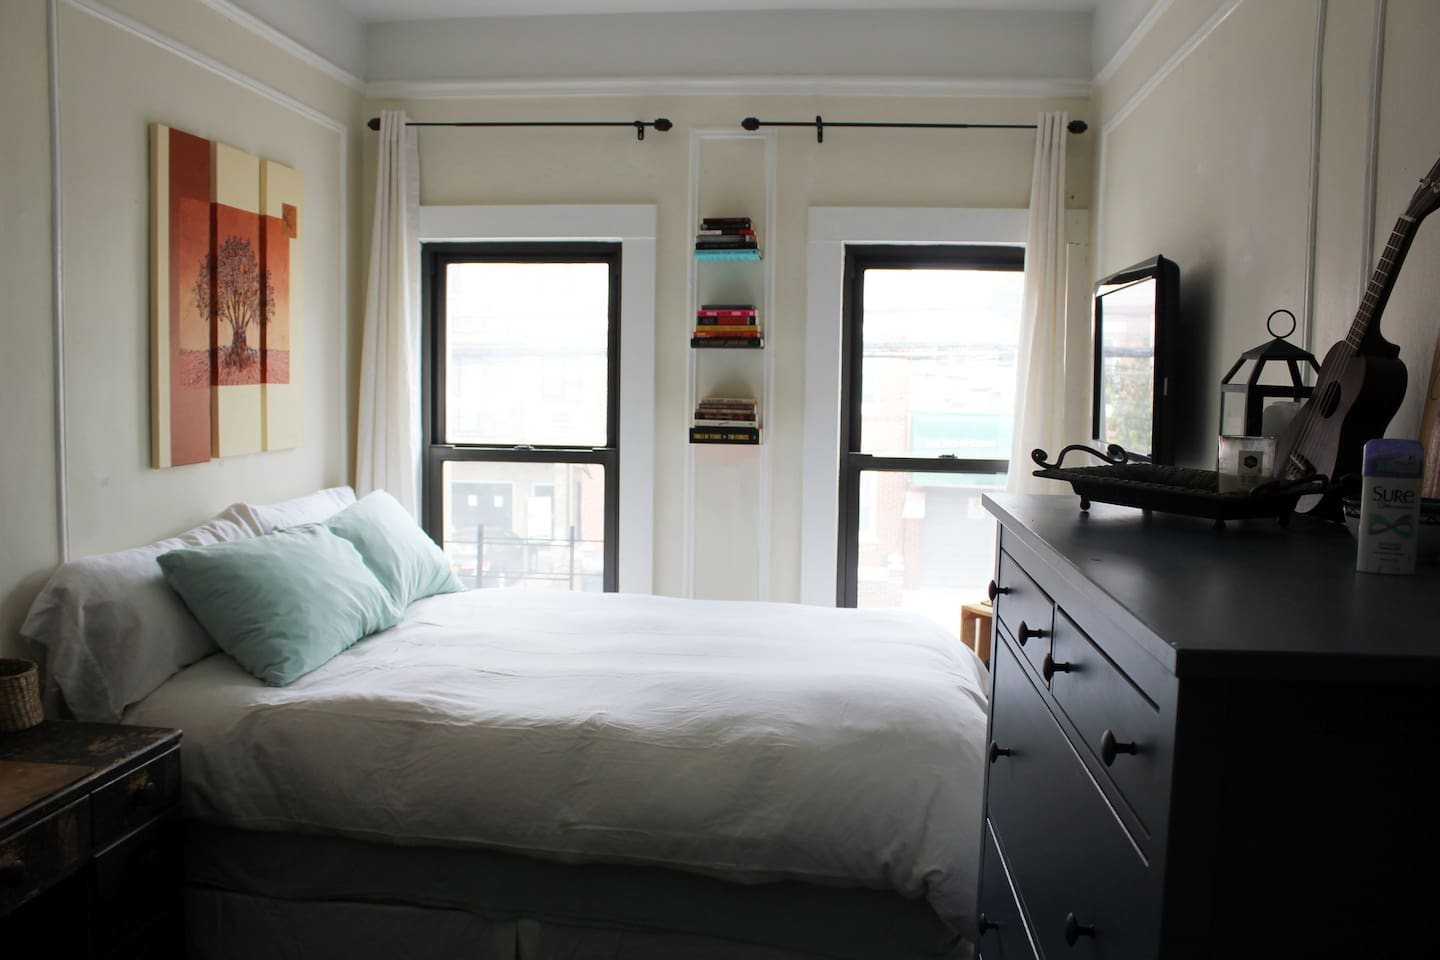 Private bedroom with Queen-sized bed & lots of morning light. Bed is so comfortable, it'll be hard to get up!